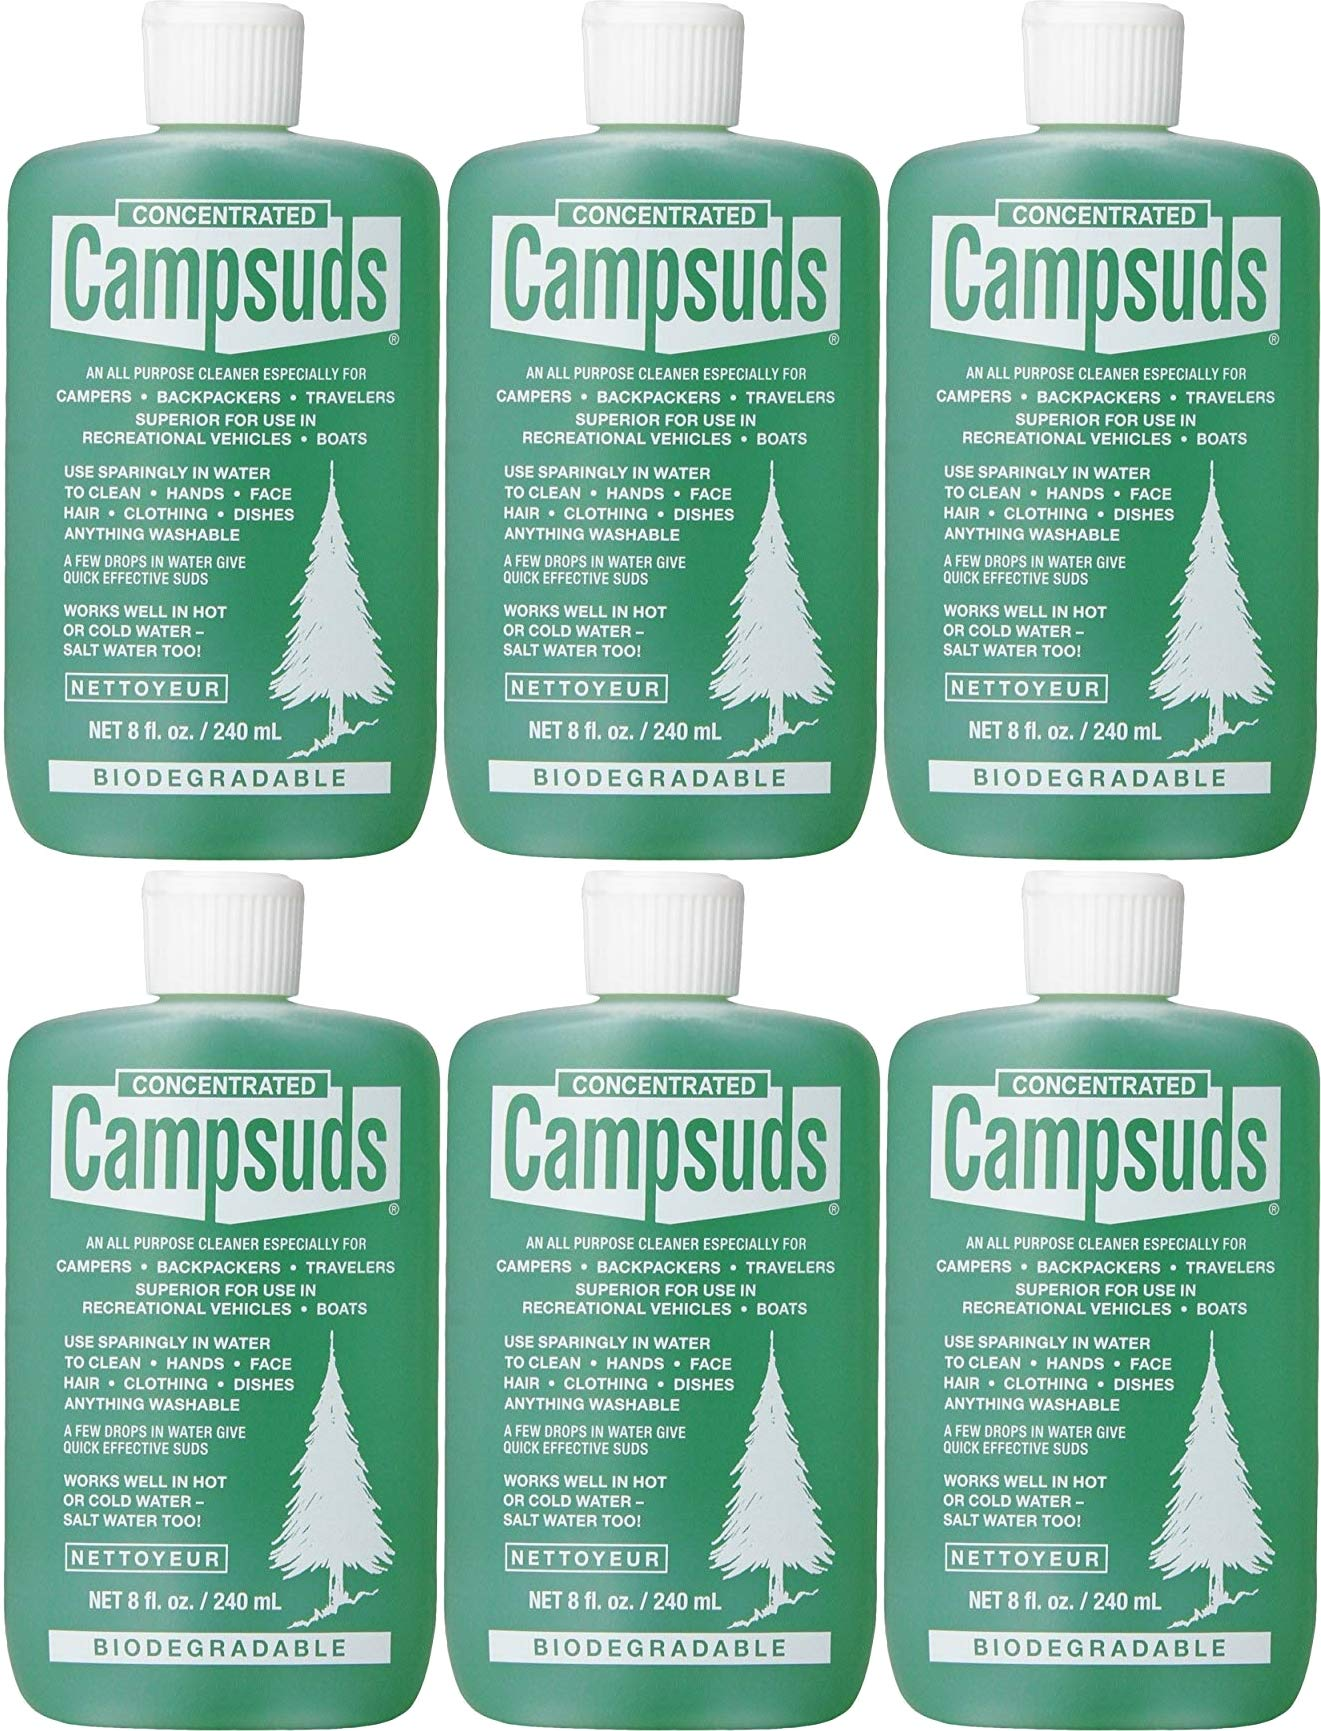 Sierra Dawn Campsuds Outdoor Soap Biodegradable Environmentally Safe All Purpose Cleaner, Camping Hiking Backpacking Travel Camp, Multipurpose for Dishes Shower Hand Shampoo (8-Ounce, 6 Bottles)